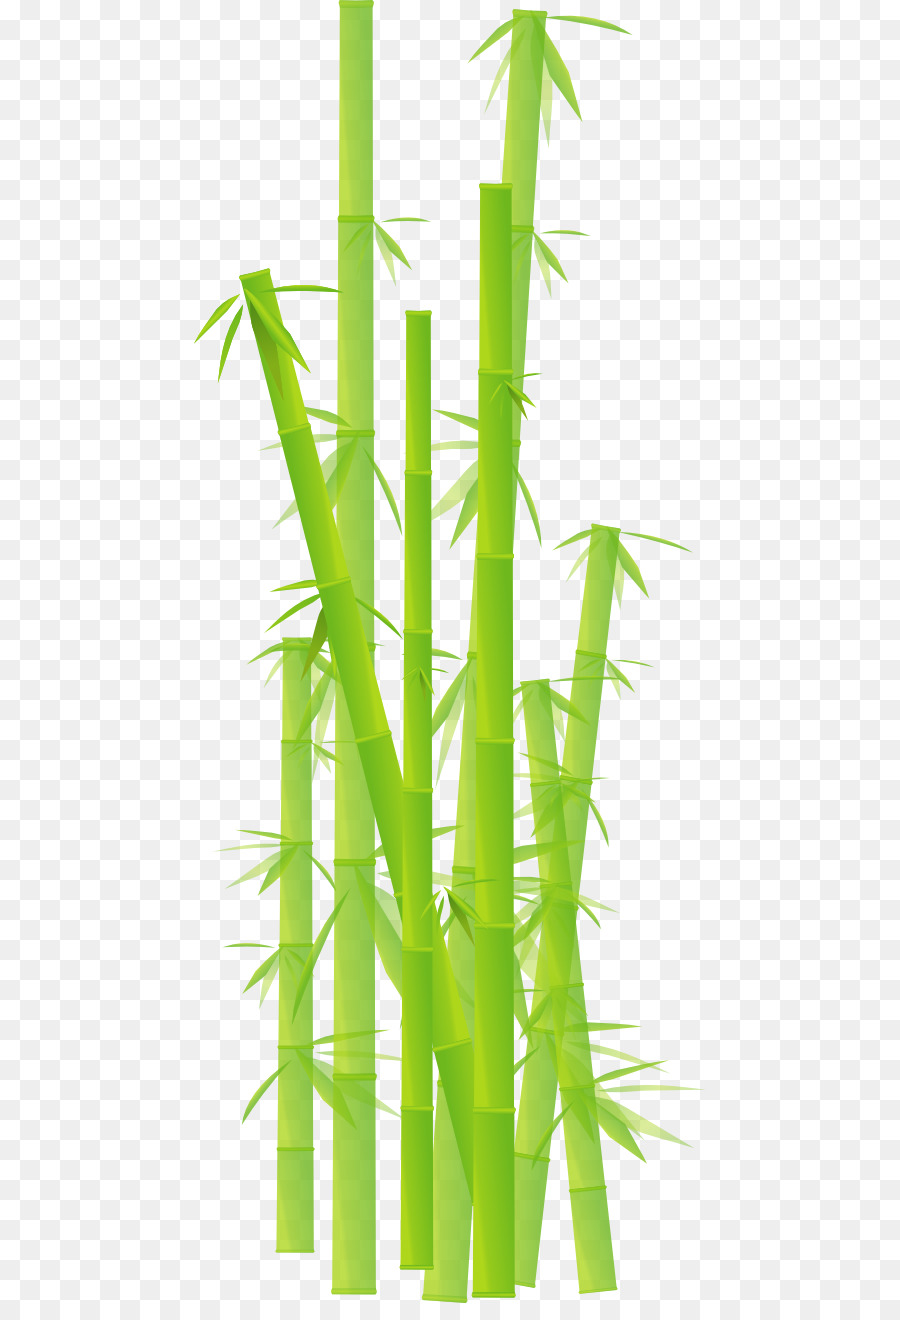 bamboo clip art bamboo cliparts png download 512 1303 free rh kisspng com bamboo clipart png bamboo clipart black and white